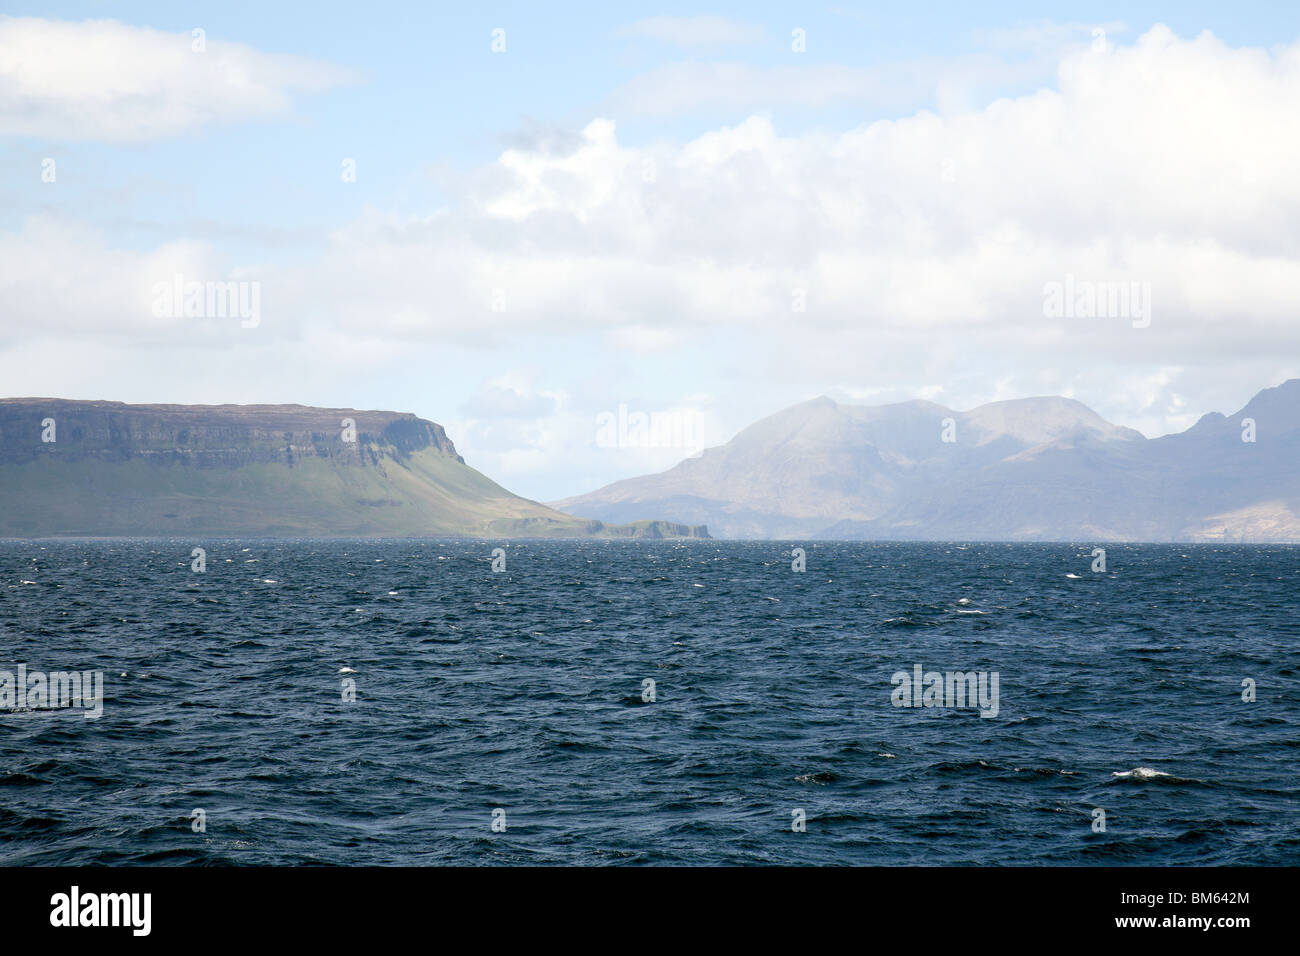 The islands of Eigg (to the left) and Rum (to the right), seen from the sea, The Western Isles, Scotland, UK - Stock Image